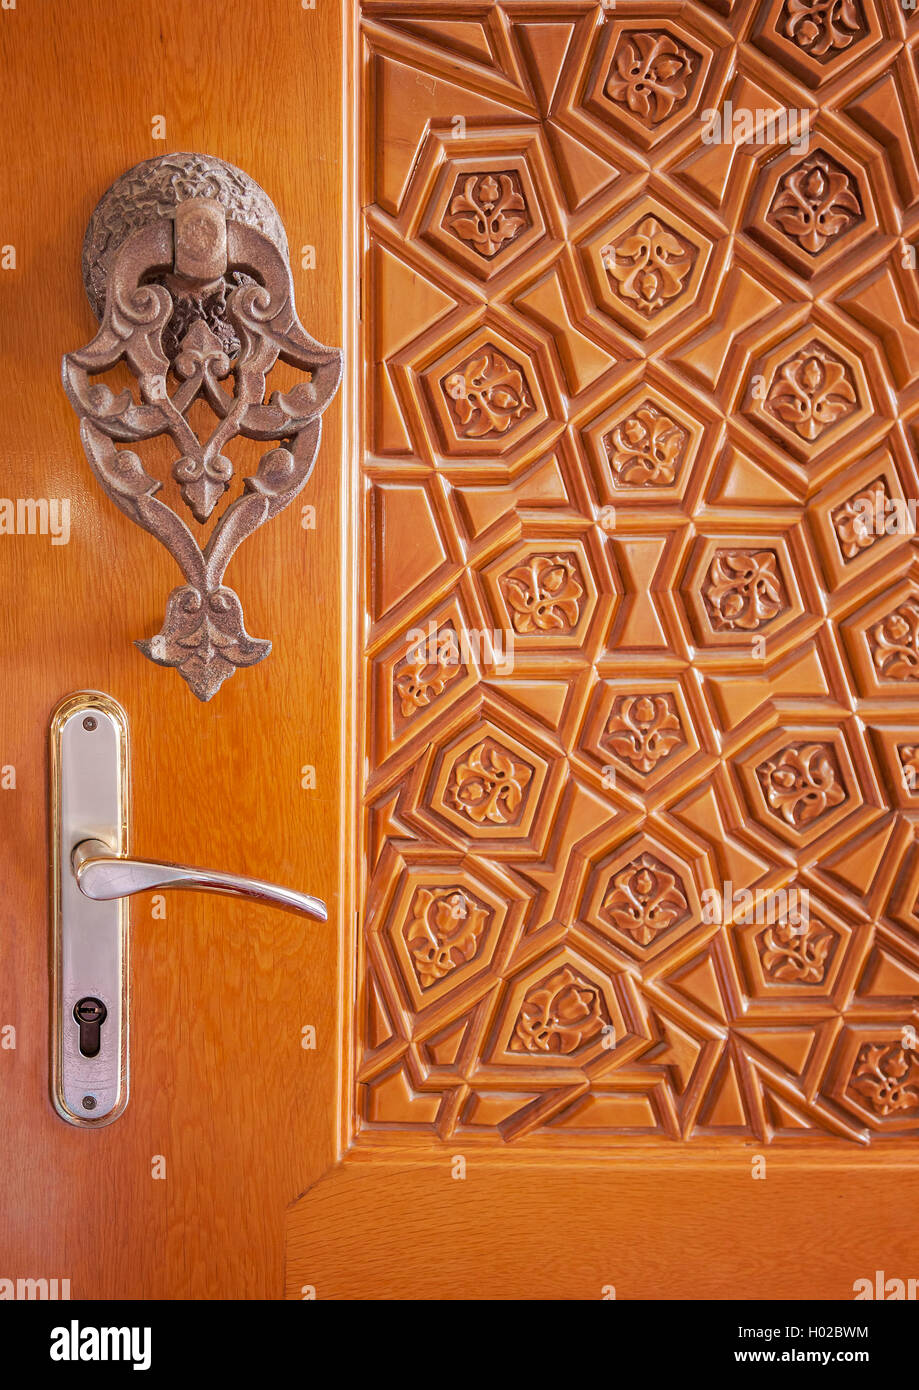 Image Of Ornate Mosque Door